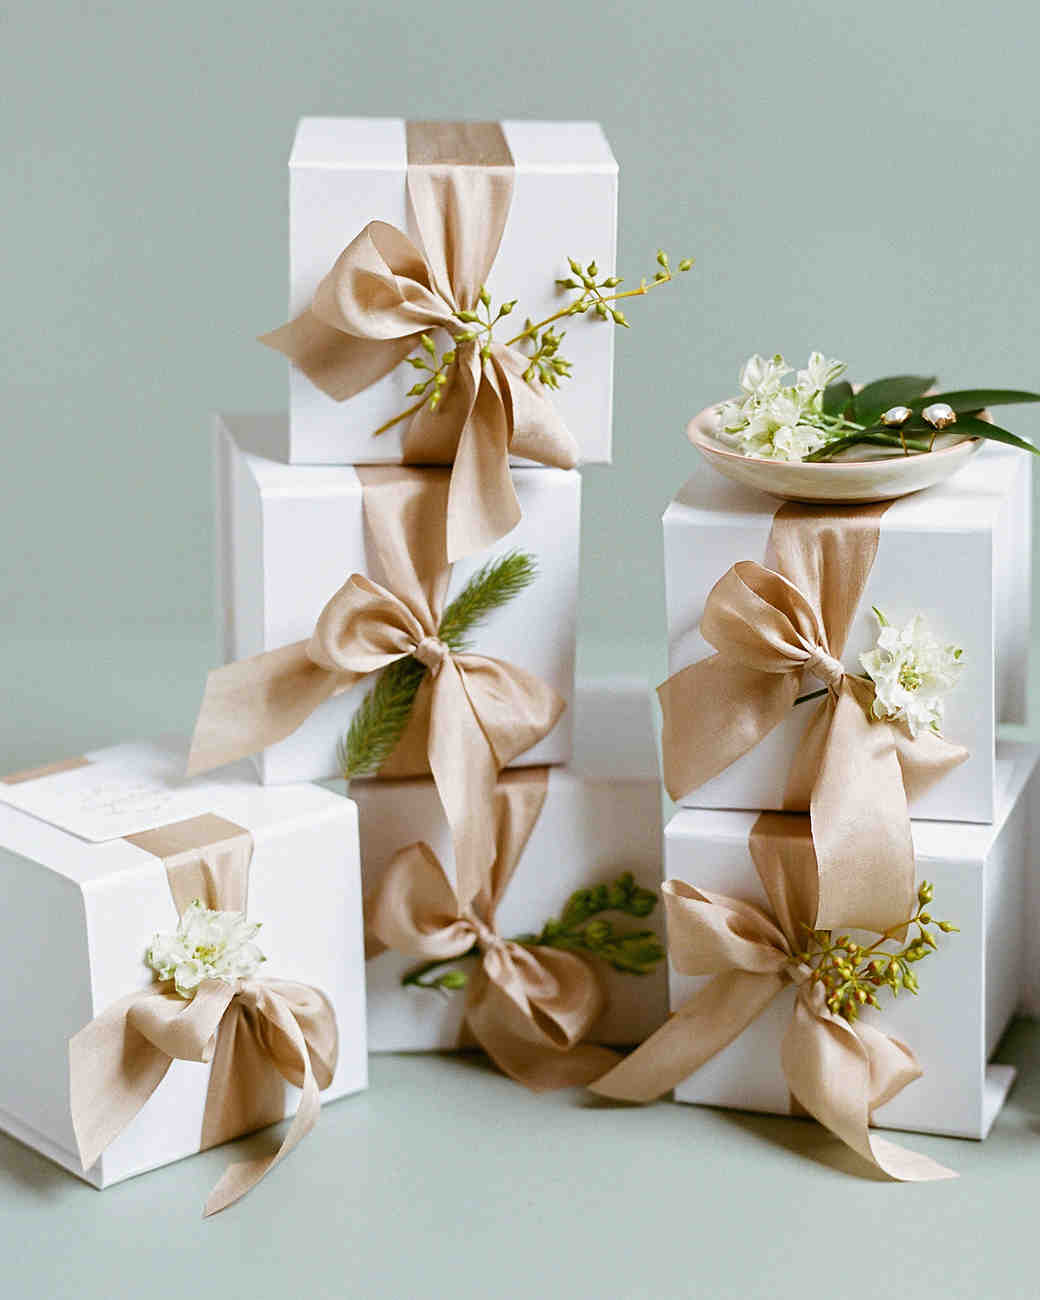 Wedding Favor Boxes: 34 Festive Fall Wedding Favor Ideas